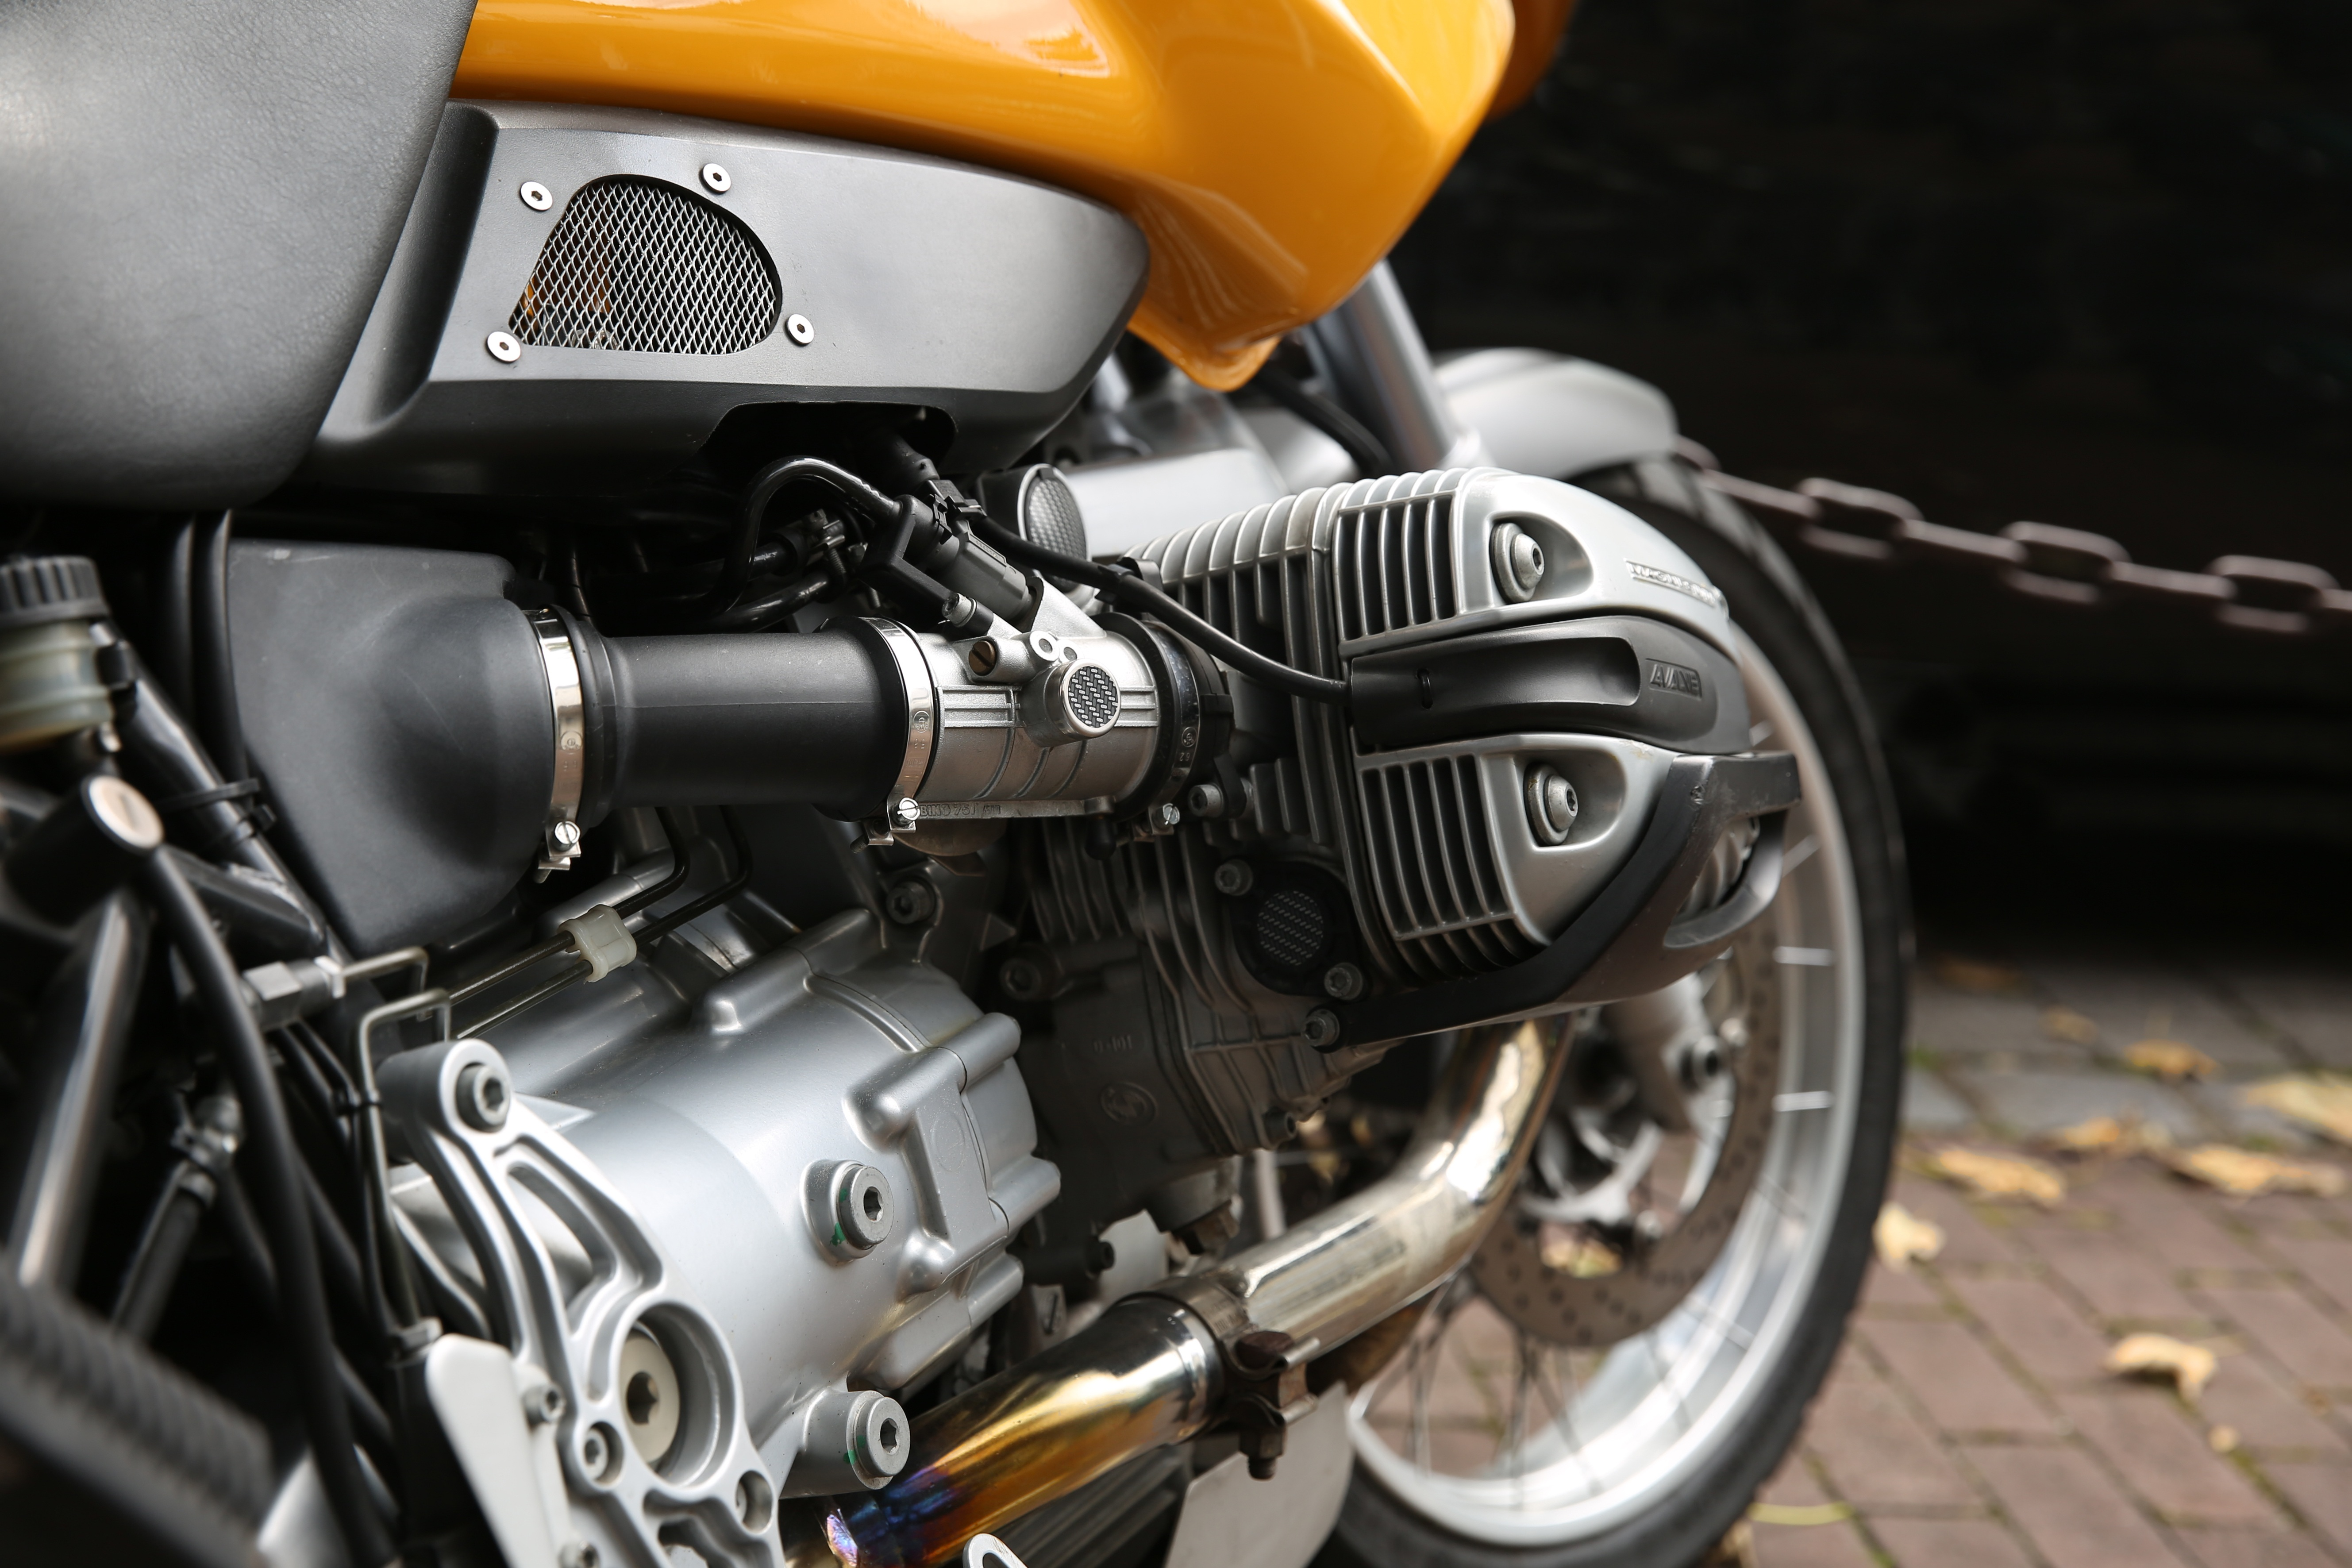 Yellow and Gray Motorcycle Parks Near Chain Rail